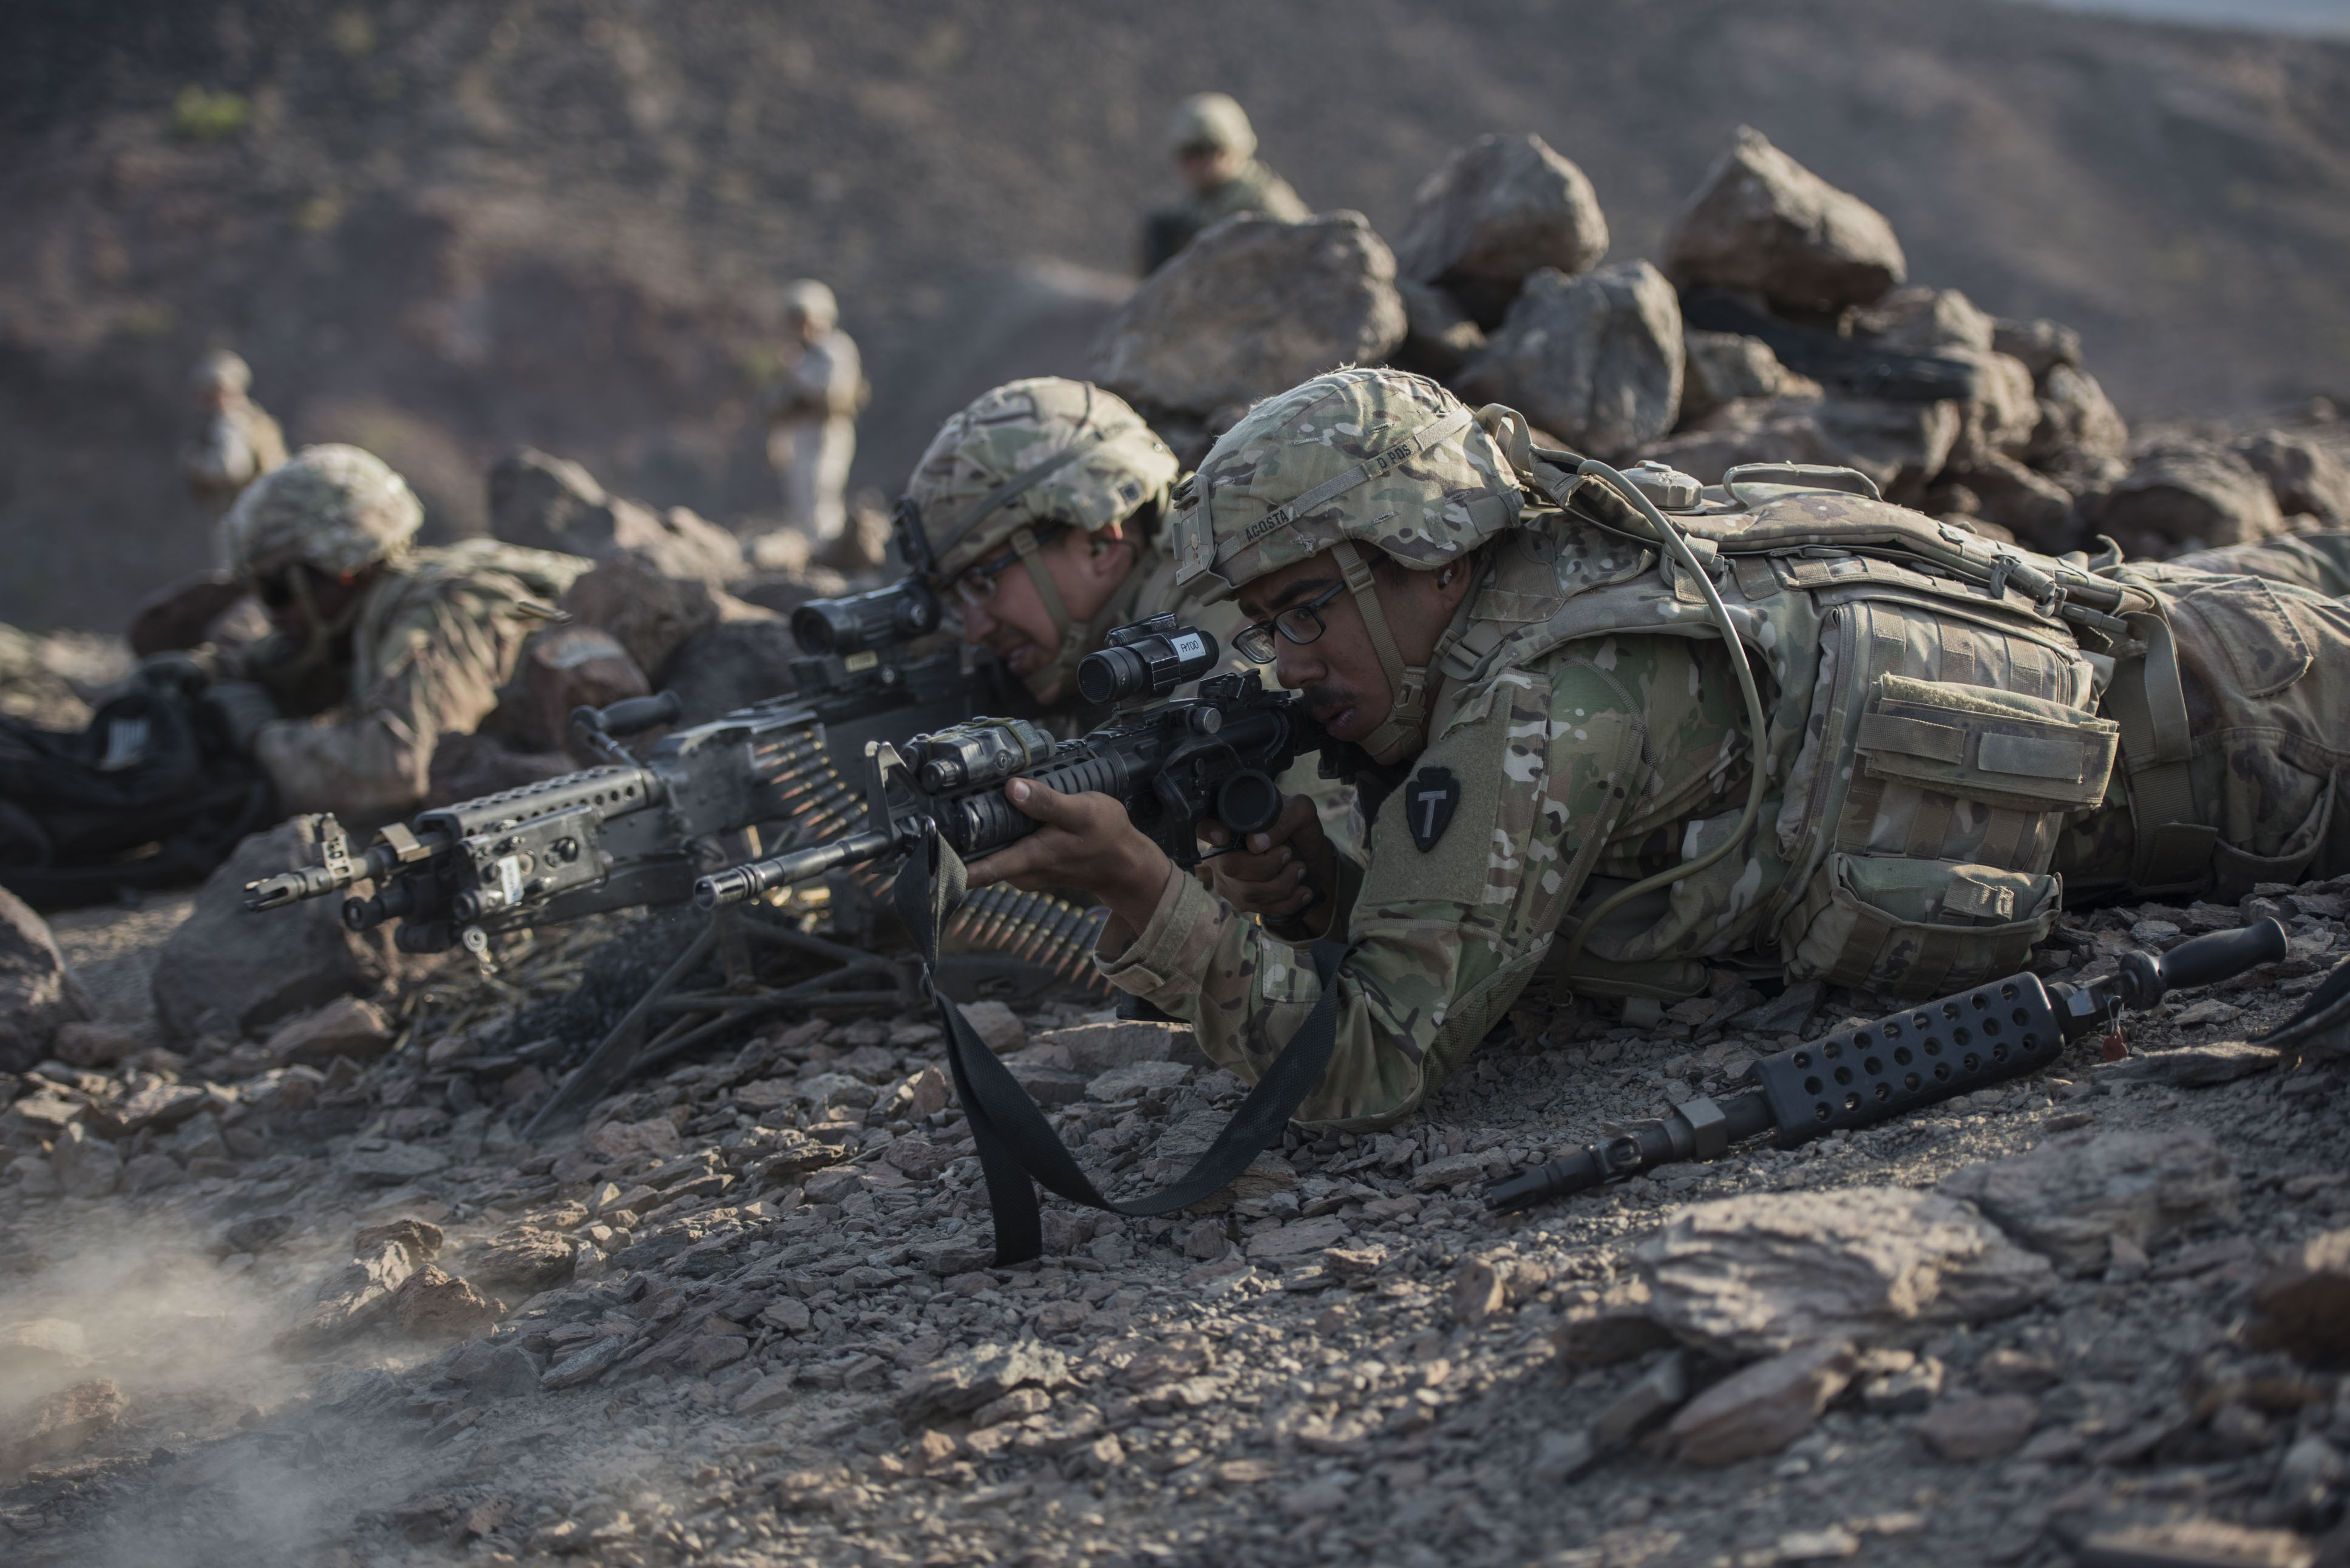 U.S. Army Soldiers with 3rd Battalion, 144th Infantry Regiment, assigned to Task Force Bayonet, Combined Joint Task Force - Horn of Africa, fire weapons at staged targets during a live-fire combat rehearsal as part of Alligator Dagger at Arta Range, Djibouti, Dec. 17, 2017. Alligator Dagger, led by Naval Amphibious Force, Task Force 51/5th Marine Expeditionary Brigade, is a dedicated, bilateral combat rehearsal that combines U.S. and French forces to practice, rehearse and exercise integrated capabilities available to U.S. Central Command both afloat and ashore. (U.S. Air Force photo by Staff Sgt. Allyson L. Manners)